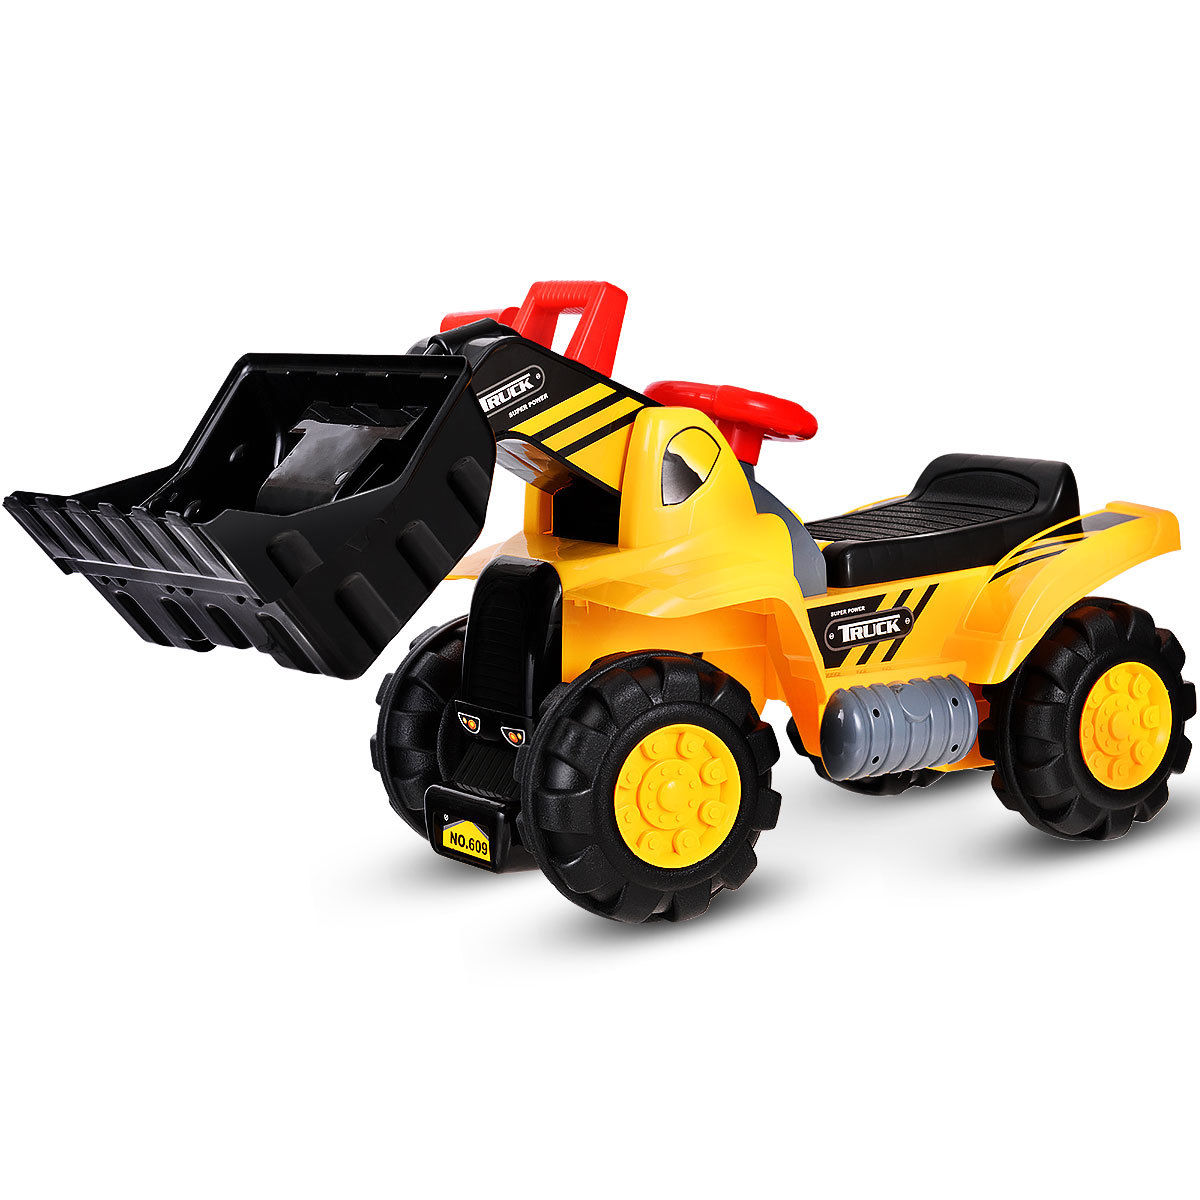 Costway Kids Toddler Ride On Excavator Digger Truck Scooter w/ Sound & Seat Storage Toy